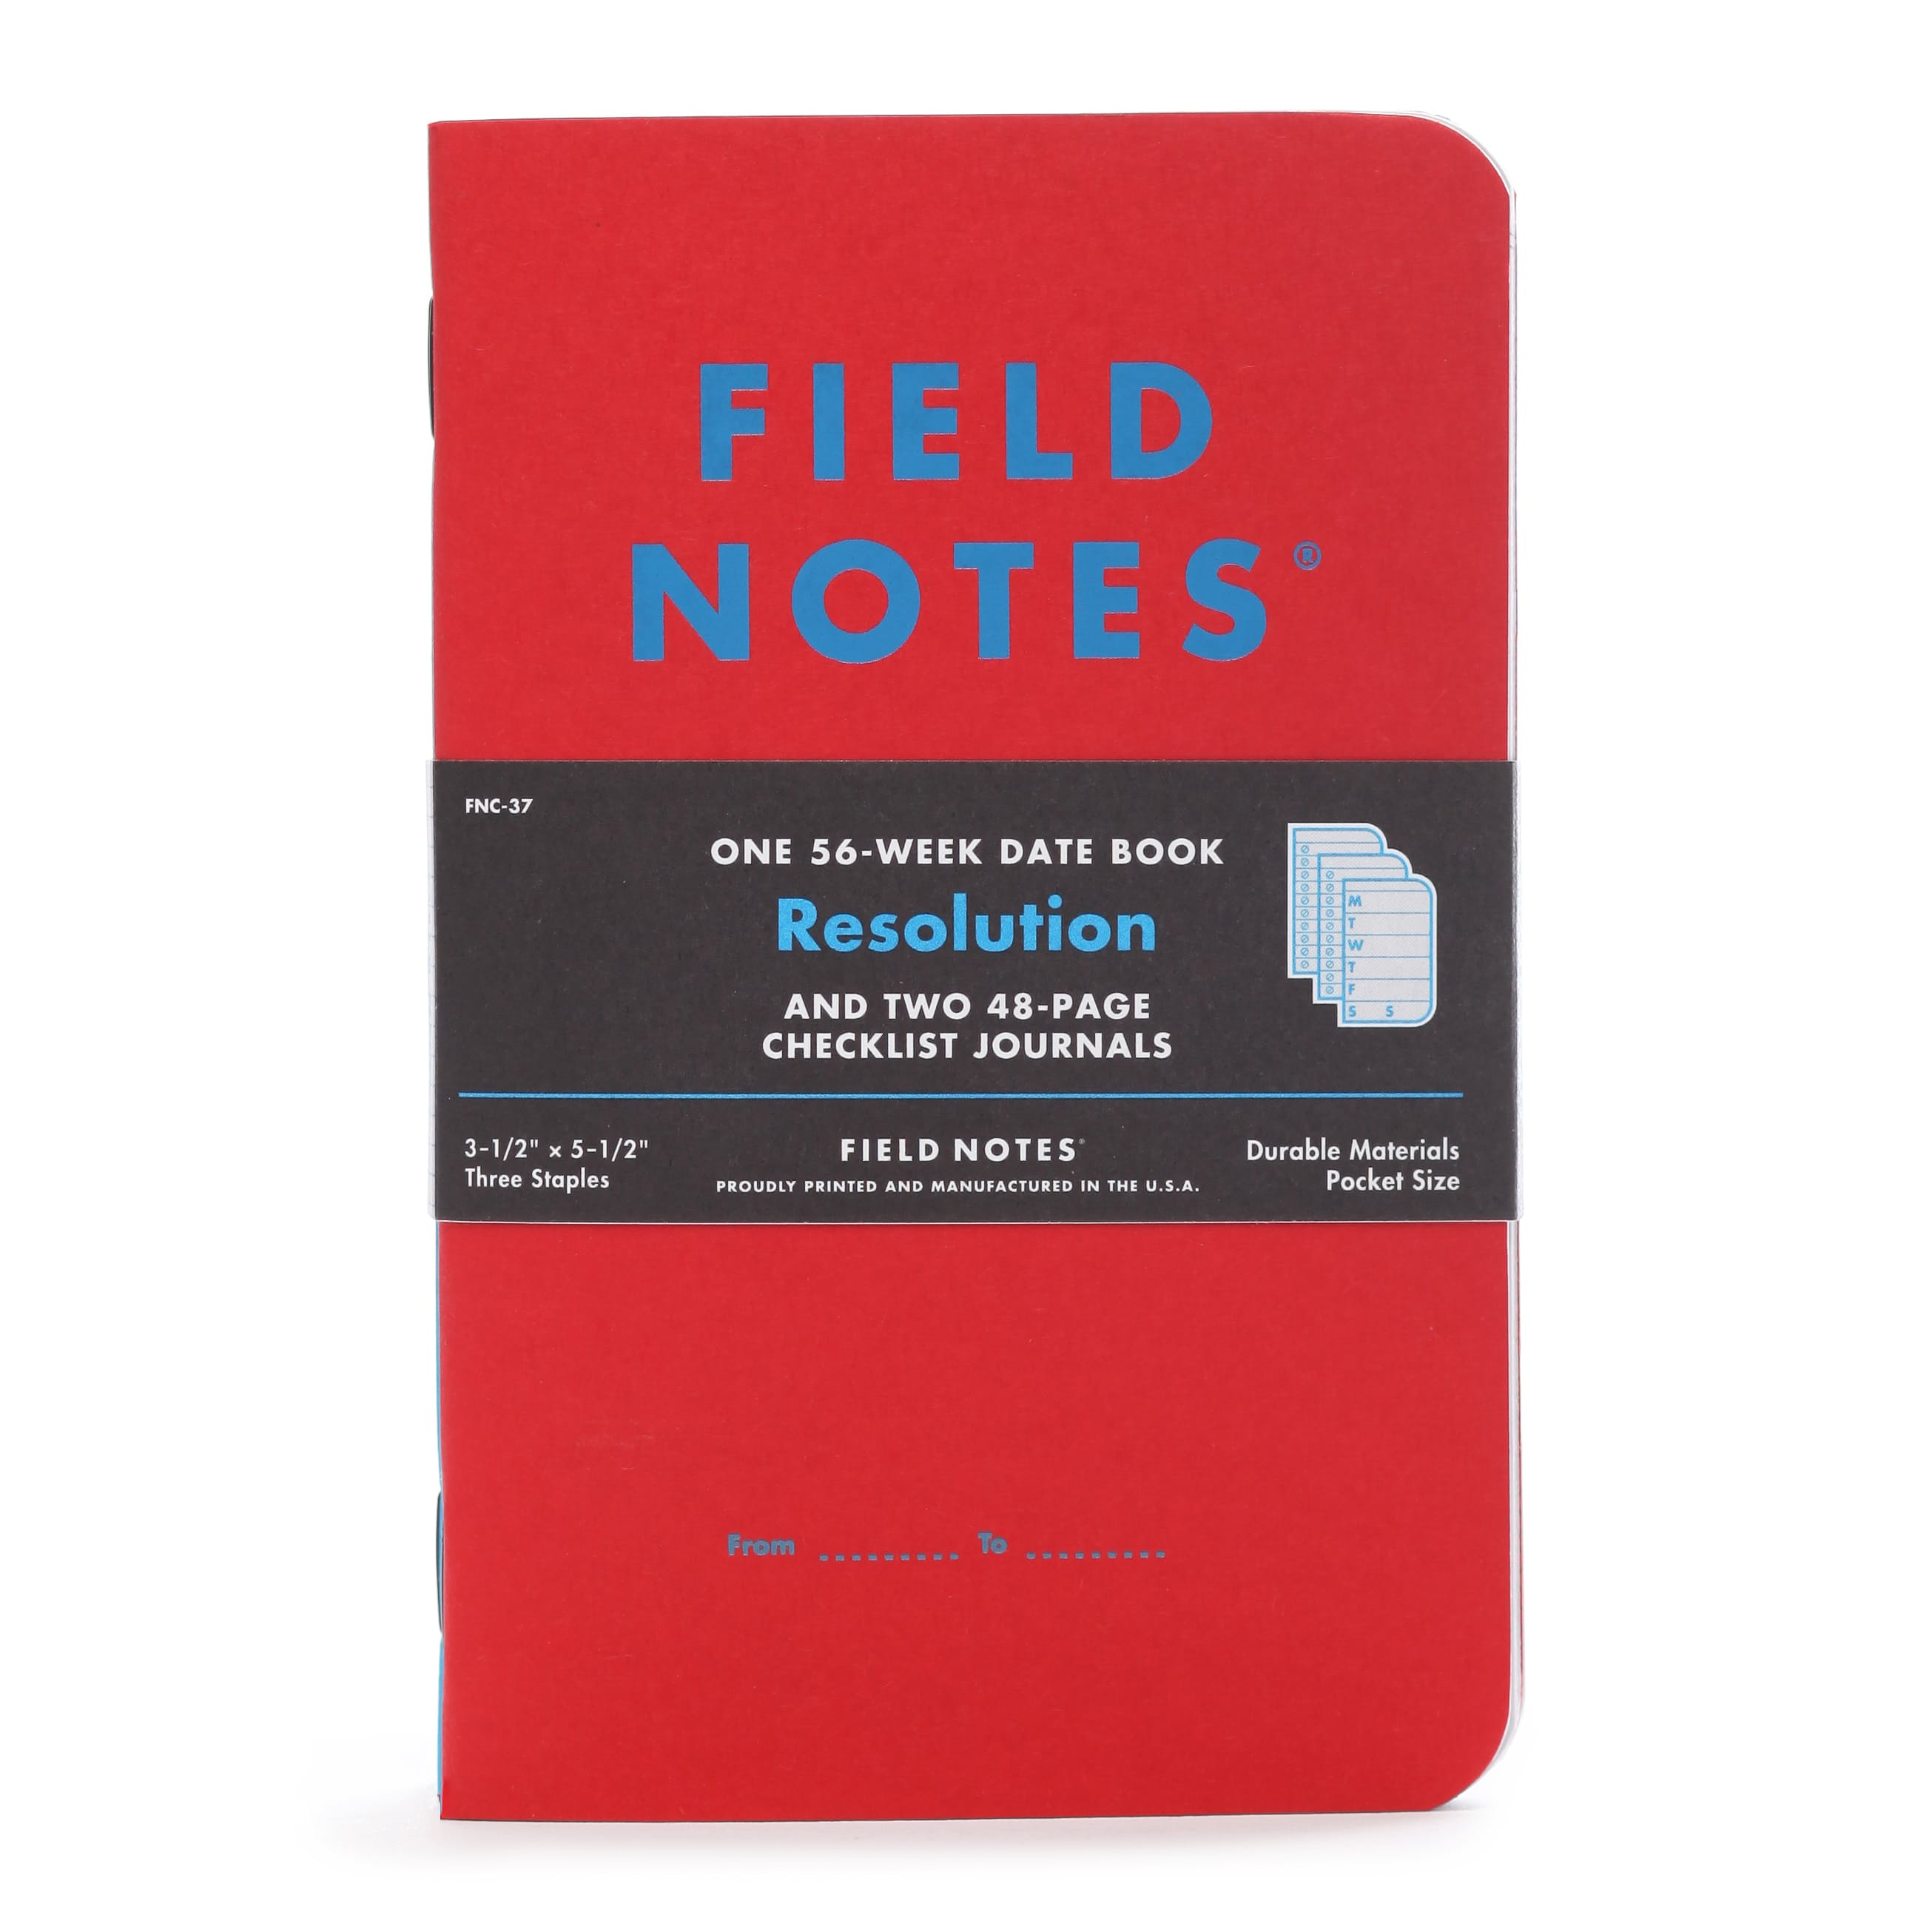 Wxsf2ids6w field notes new years resolution notebook set limited edition 0 original